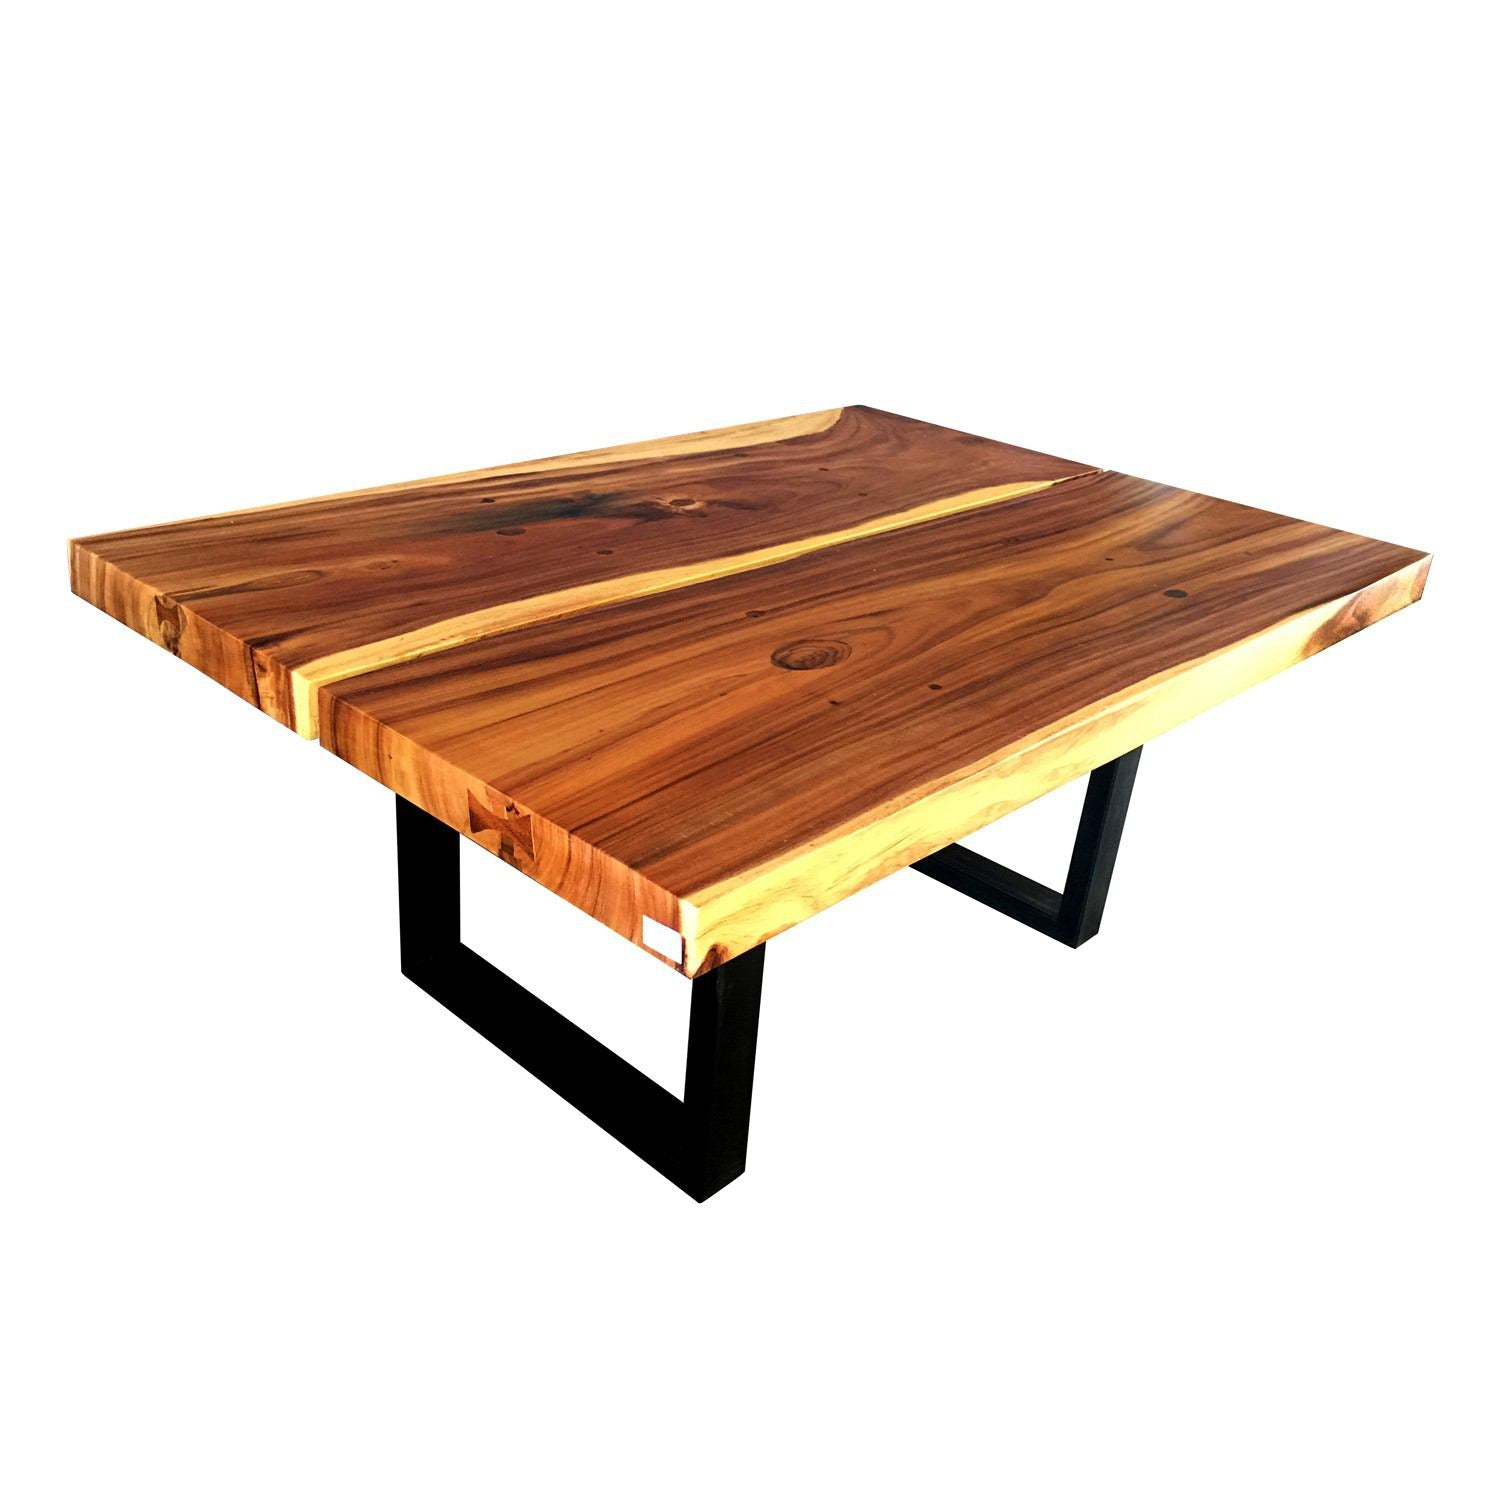 Double Dining Table LE-1020